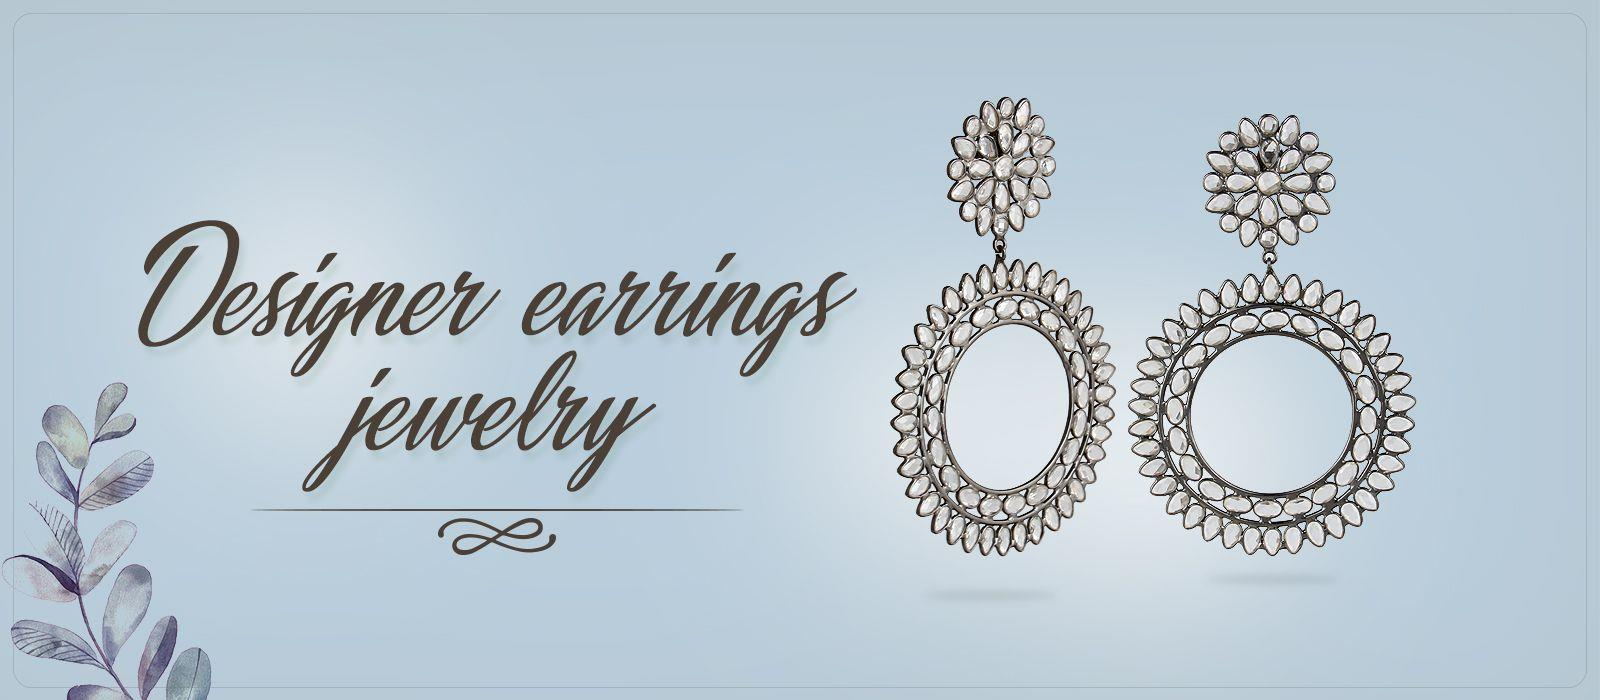 Designer earrings jewelry